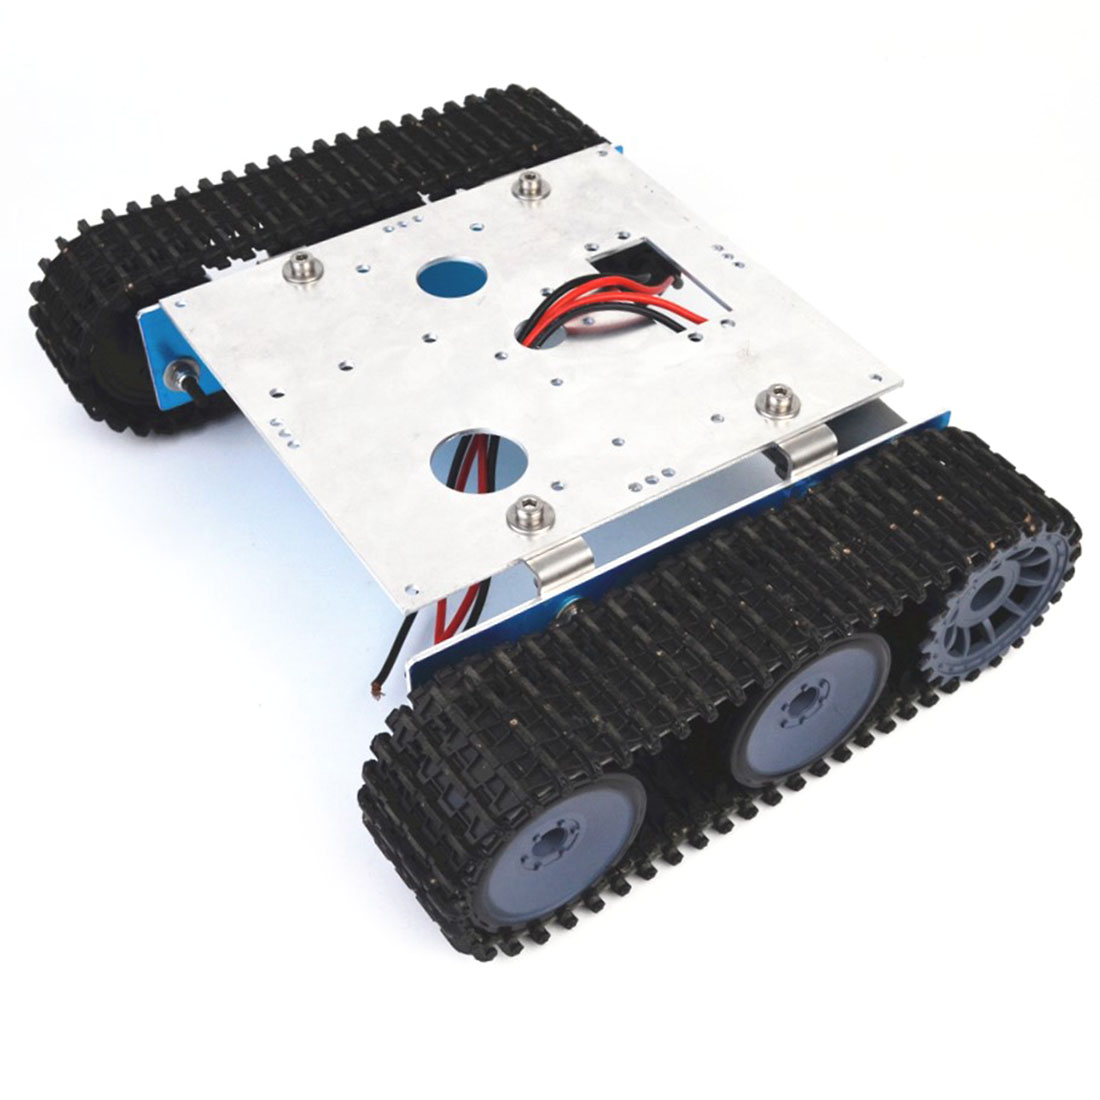 DIY Aluminium Alloy Tank Robot Caterpillar Vehicle Platform Chassis Assembly Kit For Arduino Kids Birthdaty Gifts